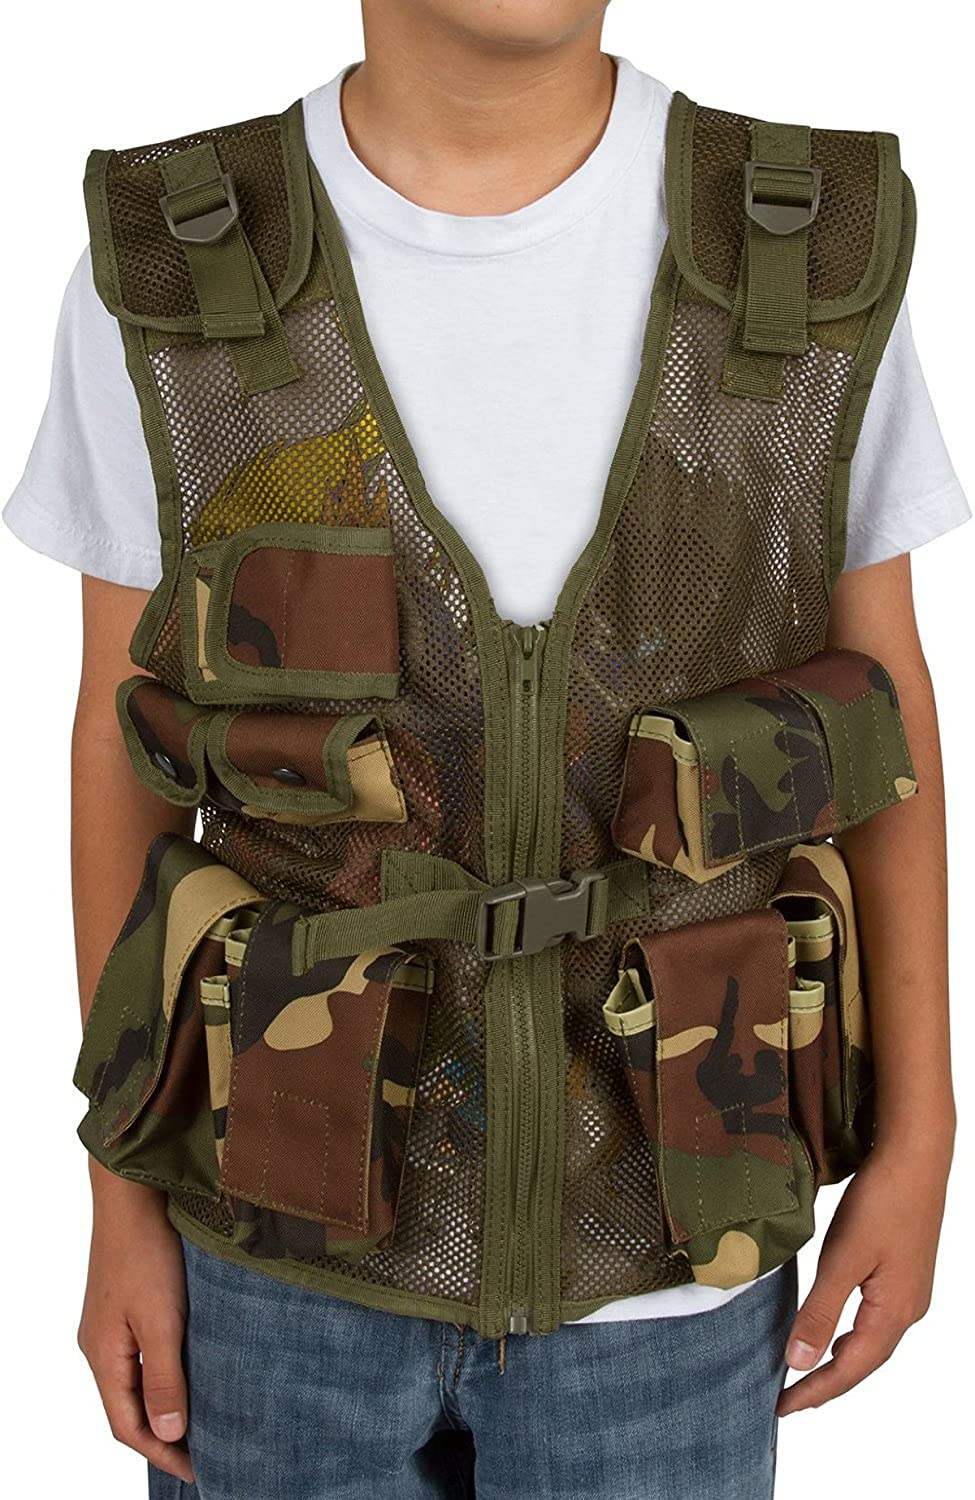 32ddd4fb1fe4c Modern Warrior Airsoft and Paintball Accessory-Junior Tactical Vest, Fits  Children and Teens 50 to 125-Pound, Camo, Tactical Vests - Amazon Canada